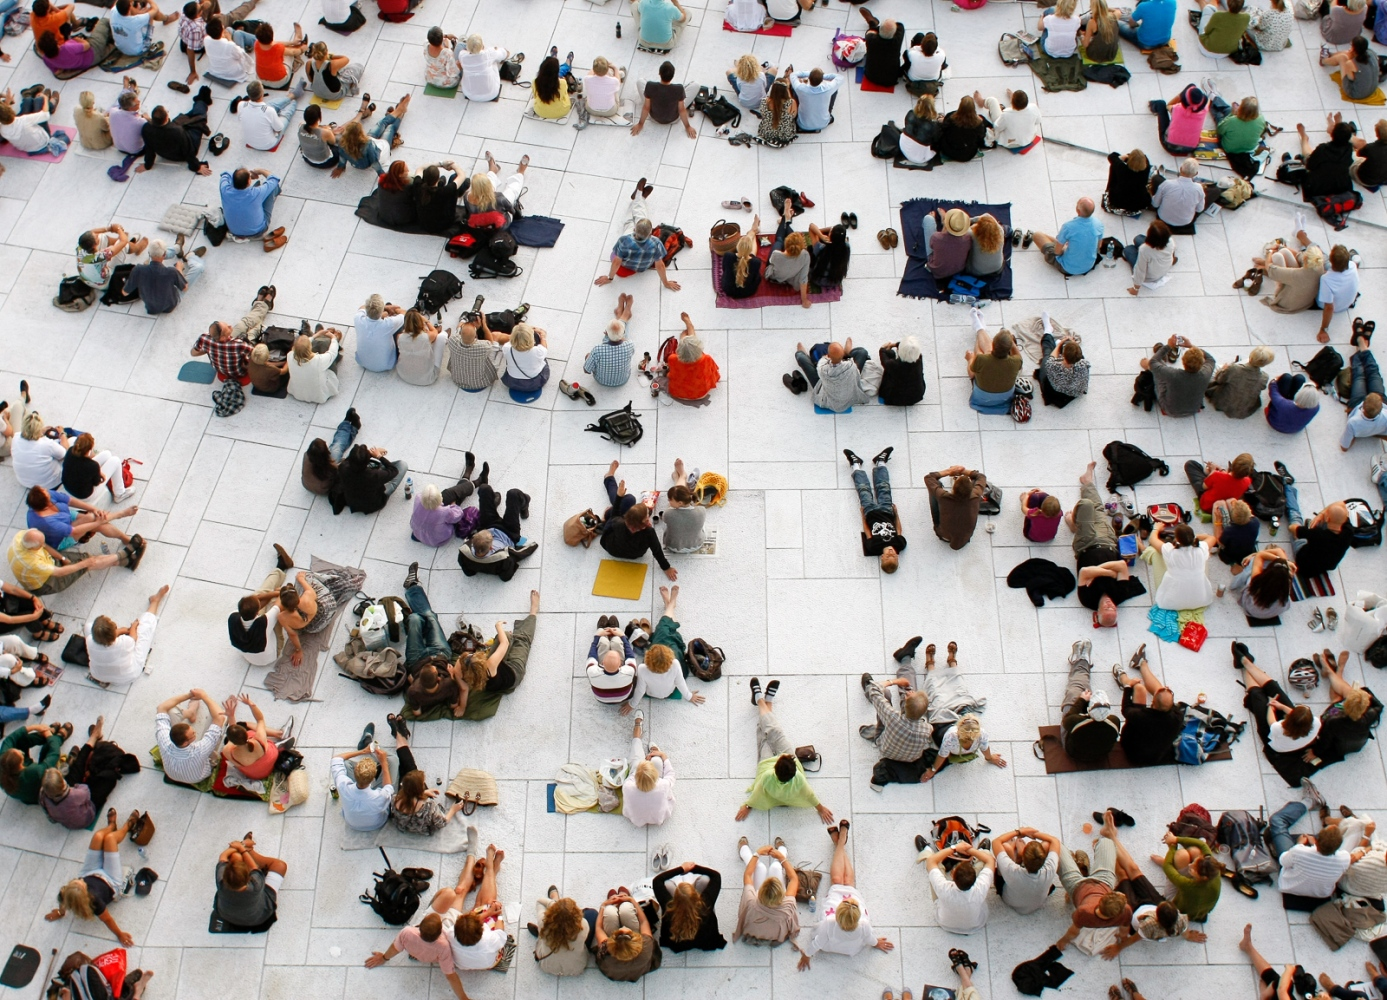 Outdoor concert at Oslo Opera House, Norway